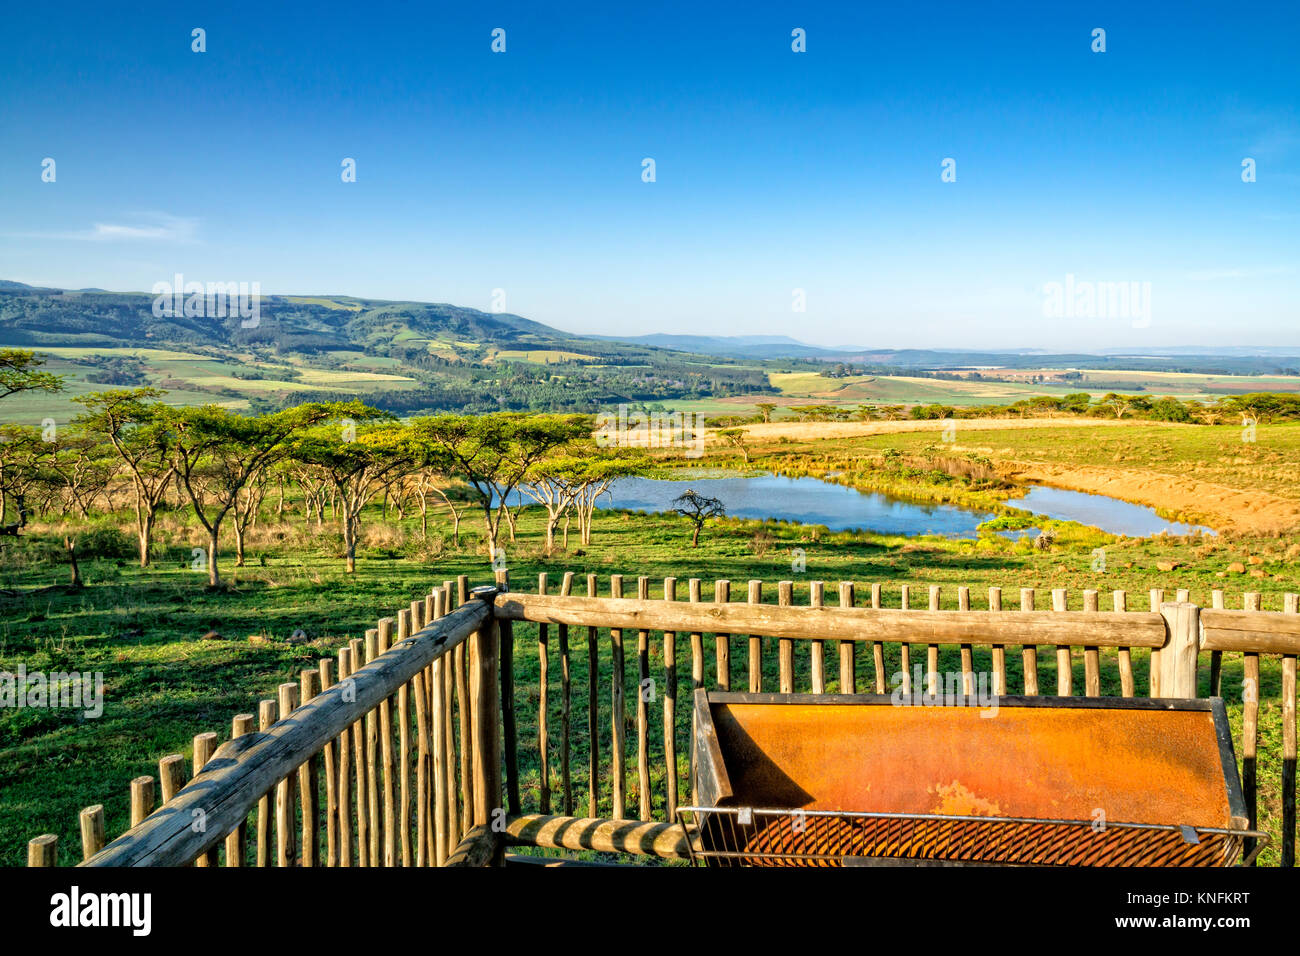 Picturesquely situated lodge in the Drakensberg mountains, South Africa. Photo is taken from the terrace of  the - Stock Image